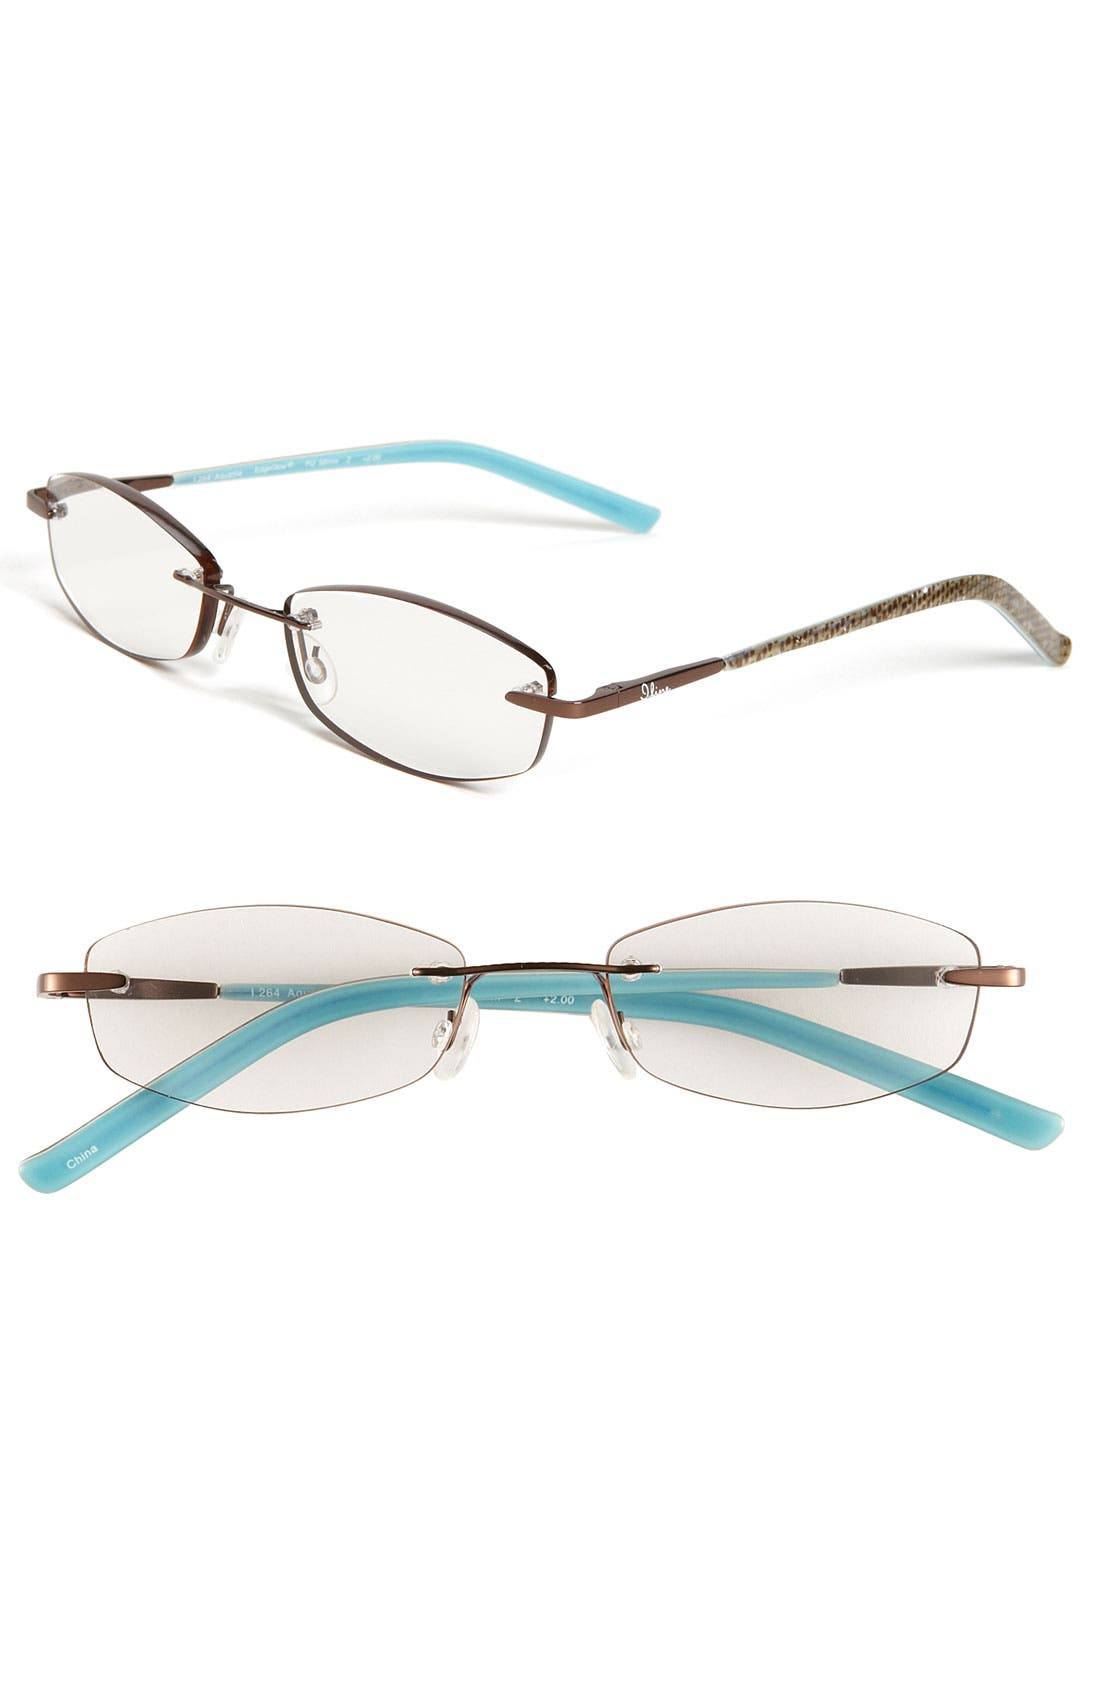 Main Image - I Line Eyewear 'Aquatile' EdgeGlow® Reading Glasses